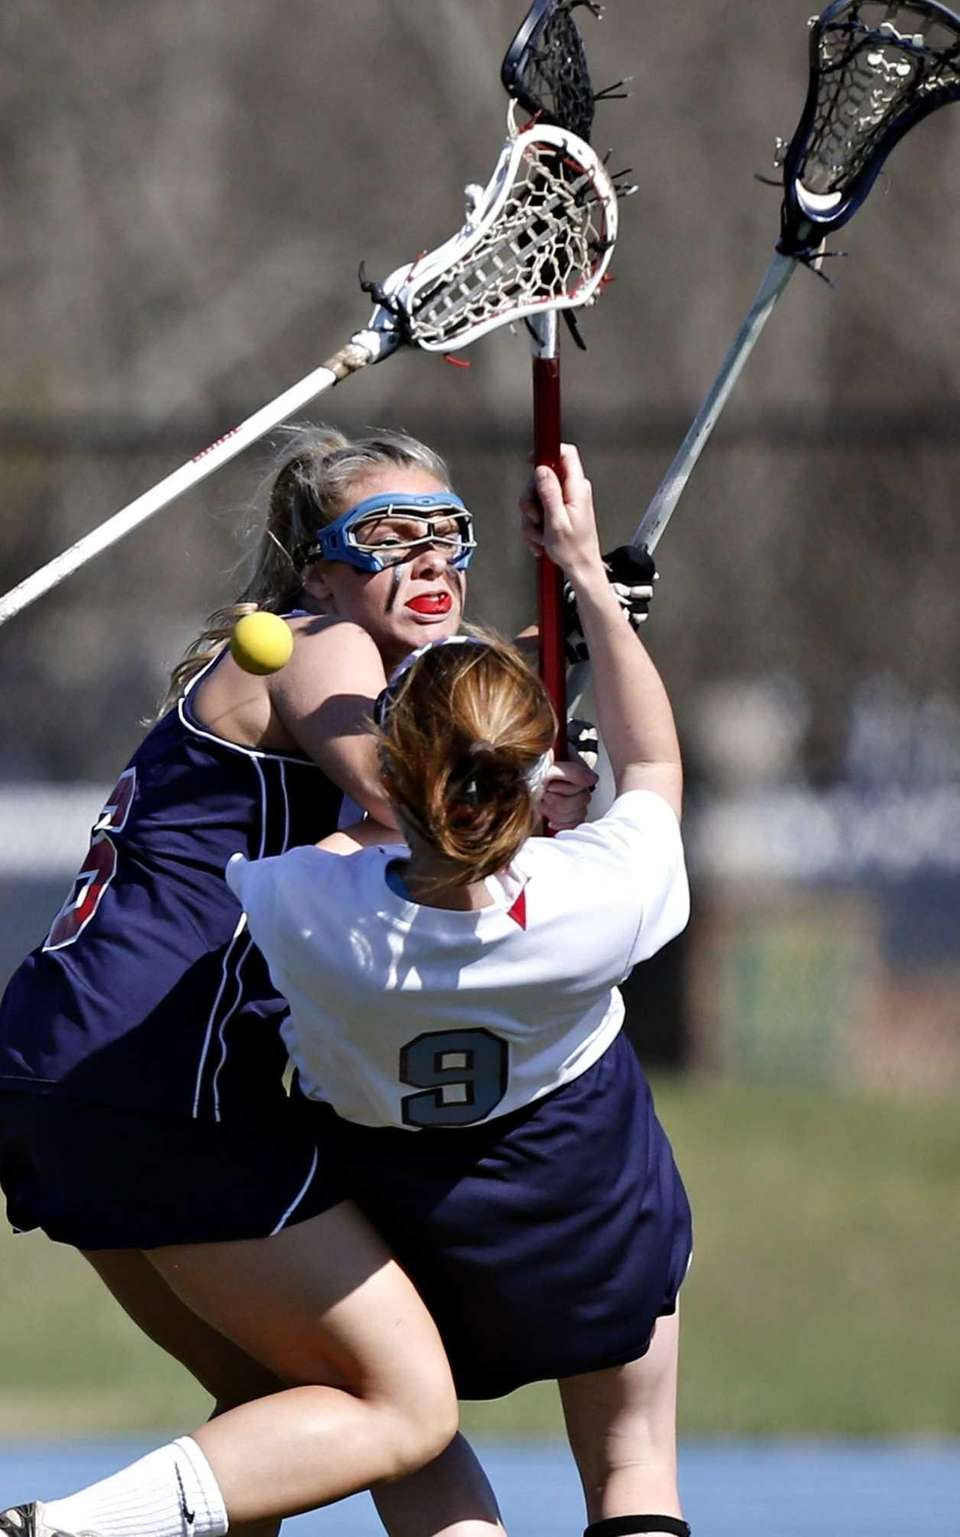 Rocky Point's Kristine Loscalzo loses the ball after